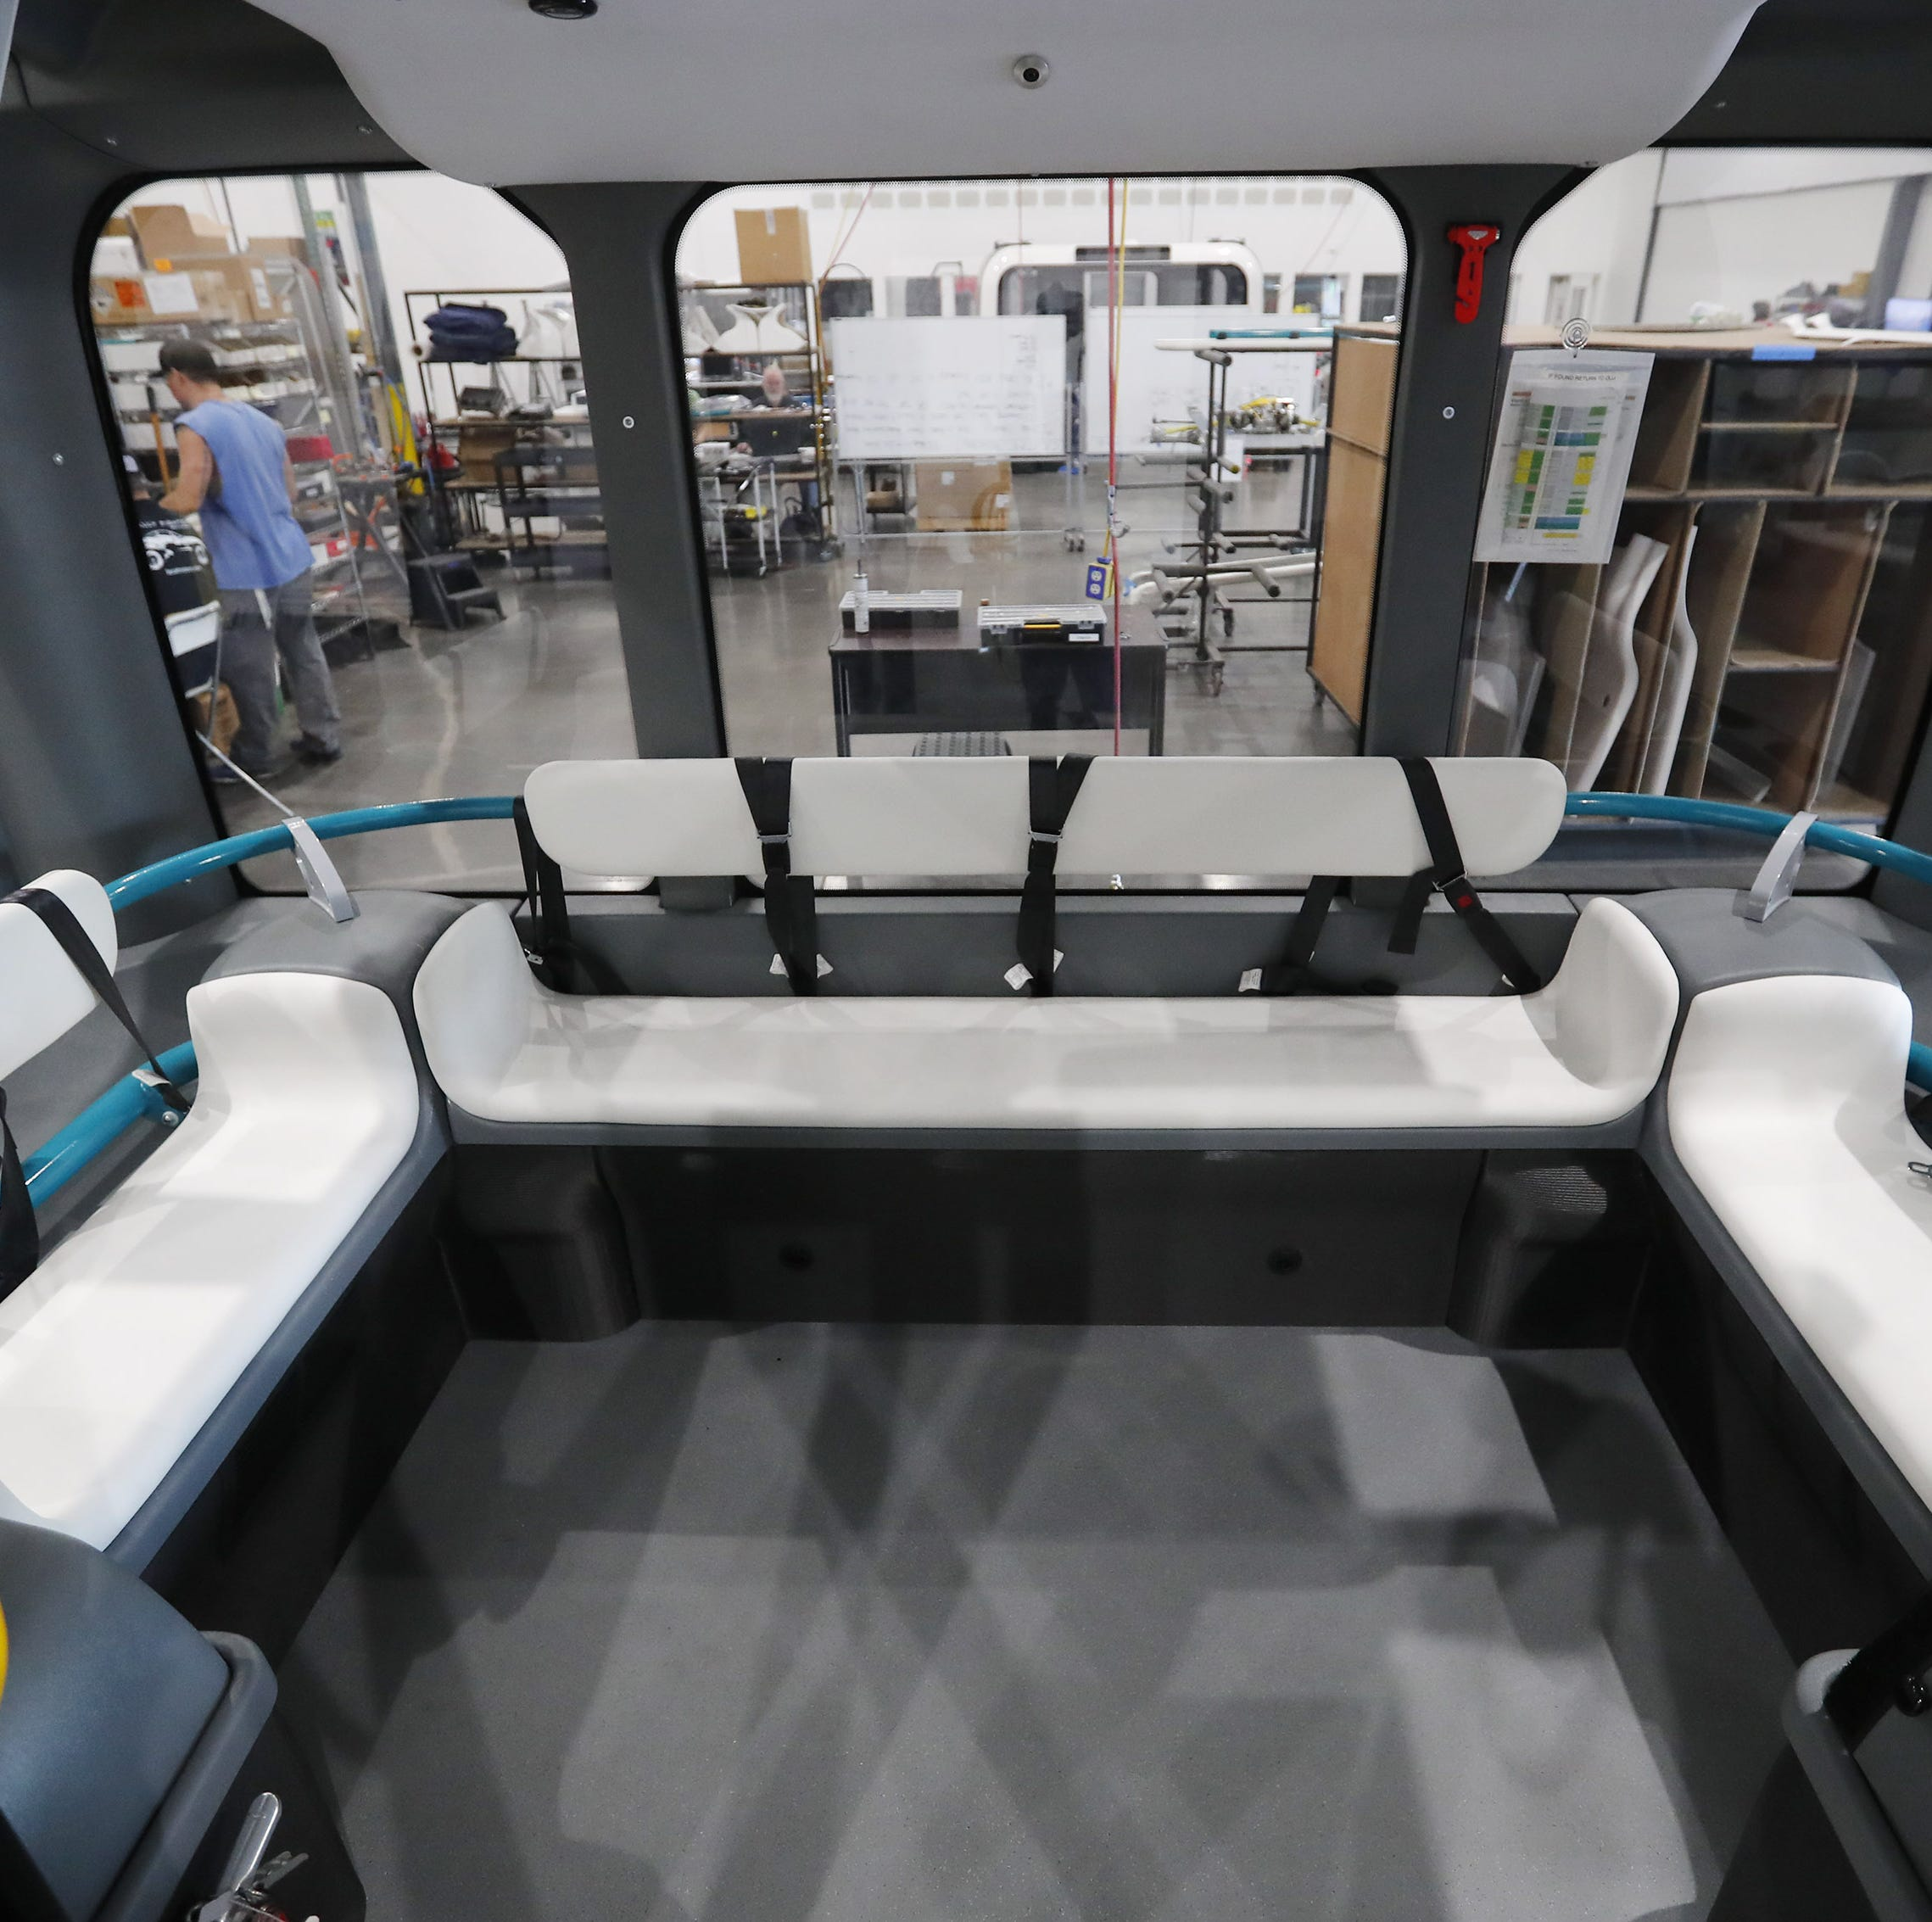 Driverless shuttles coming to East Valley Institute of Technology in Mesa